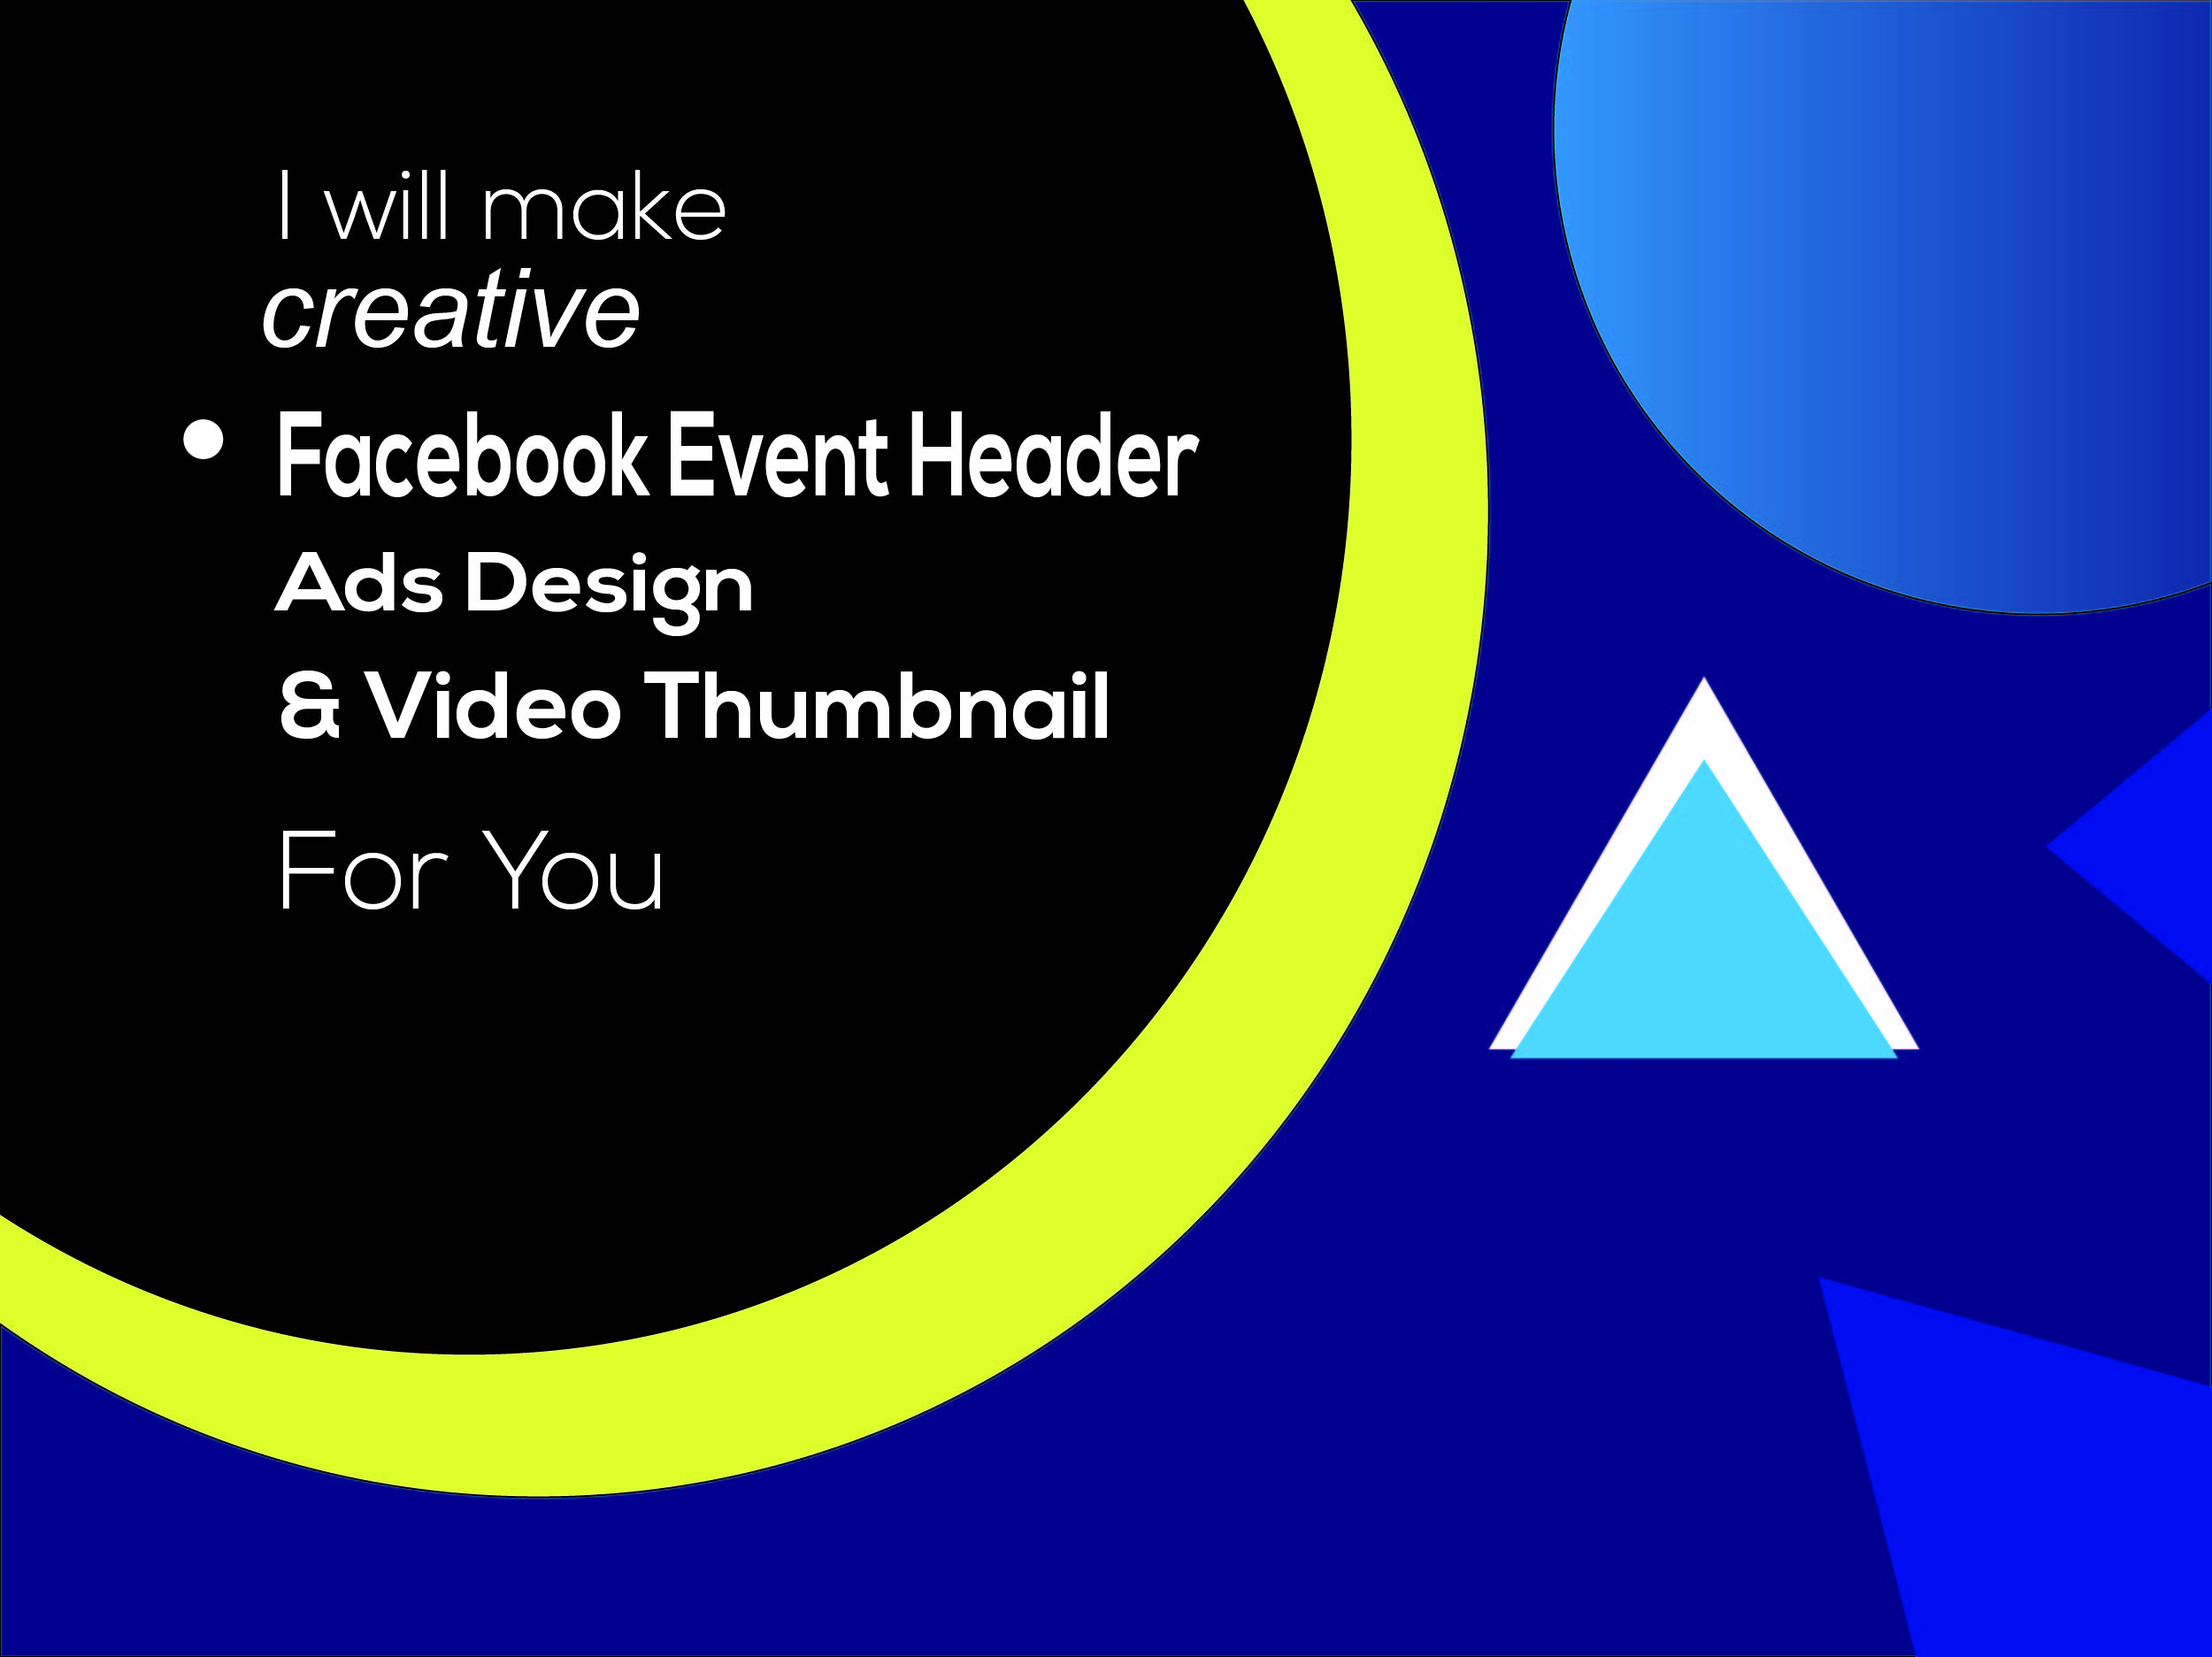 I will make creative event header, ads design & video thumbnail for you within 24hours.